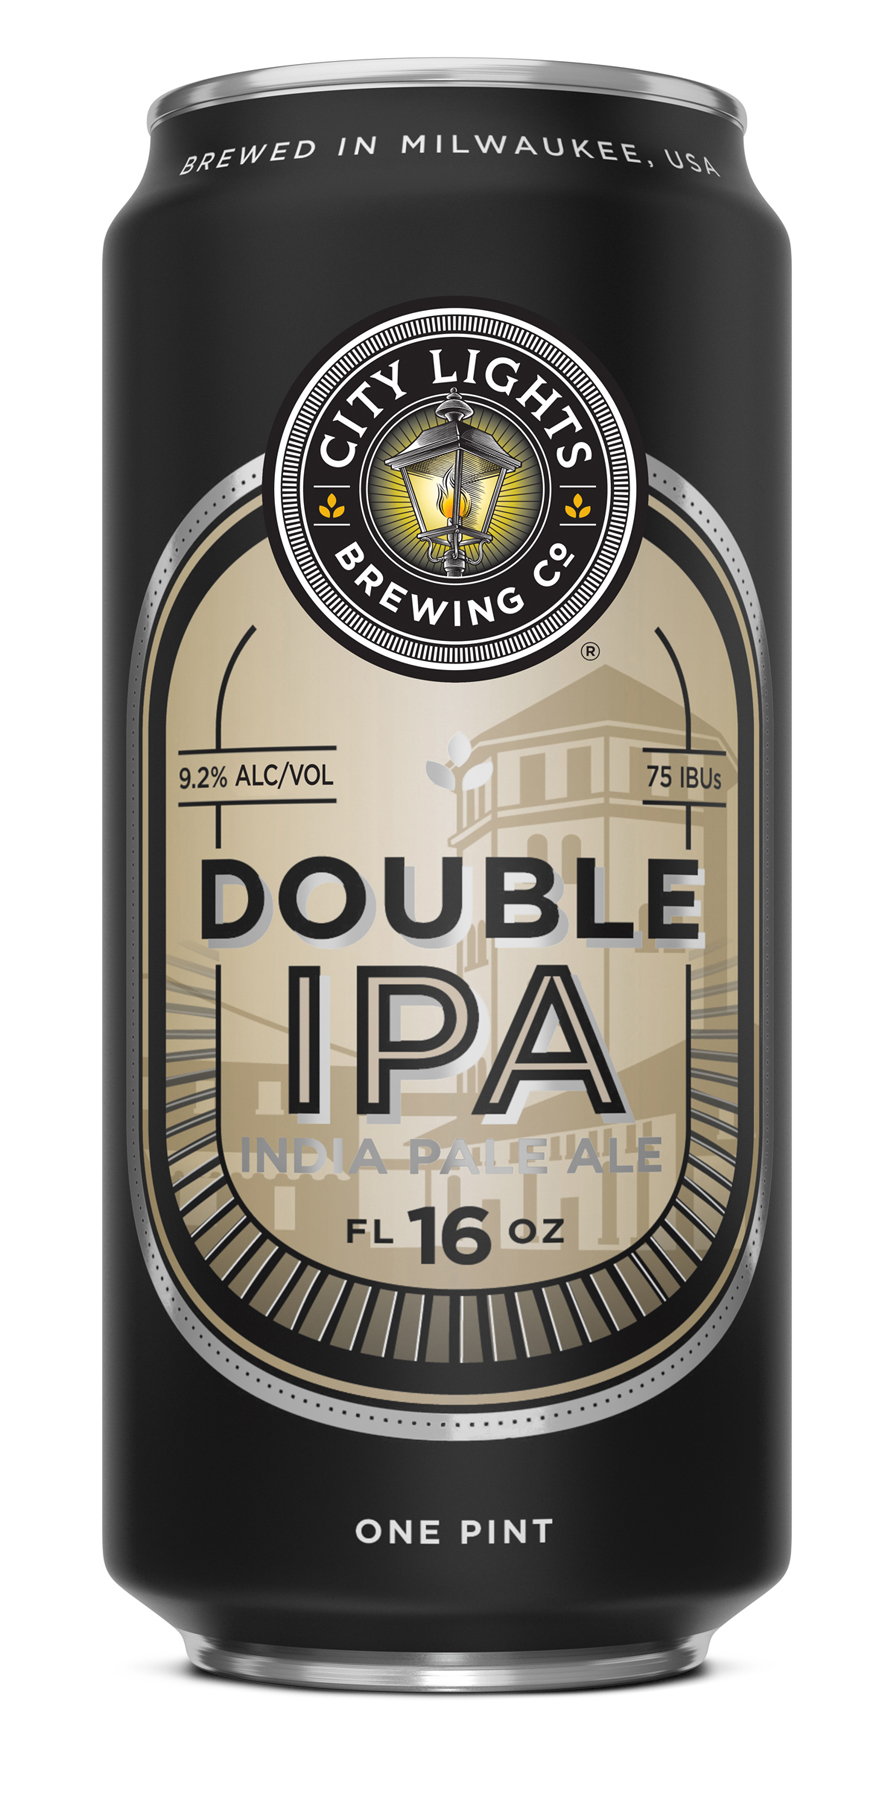 CLB_Double_IPA_16oz.jpg